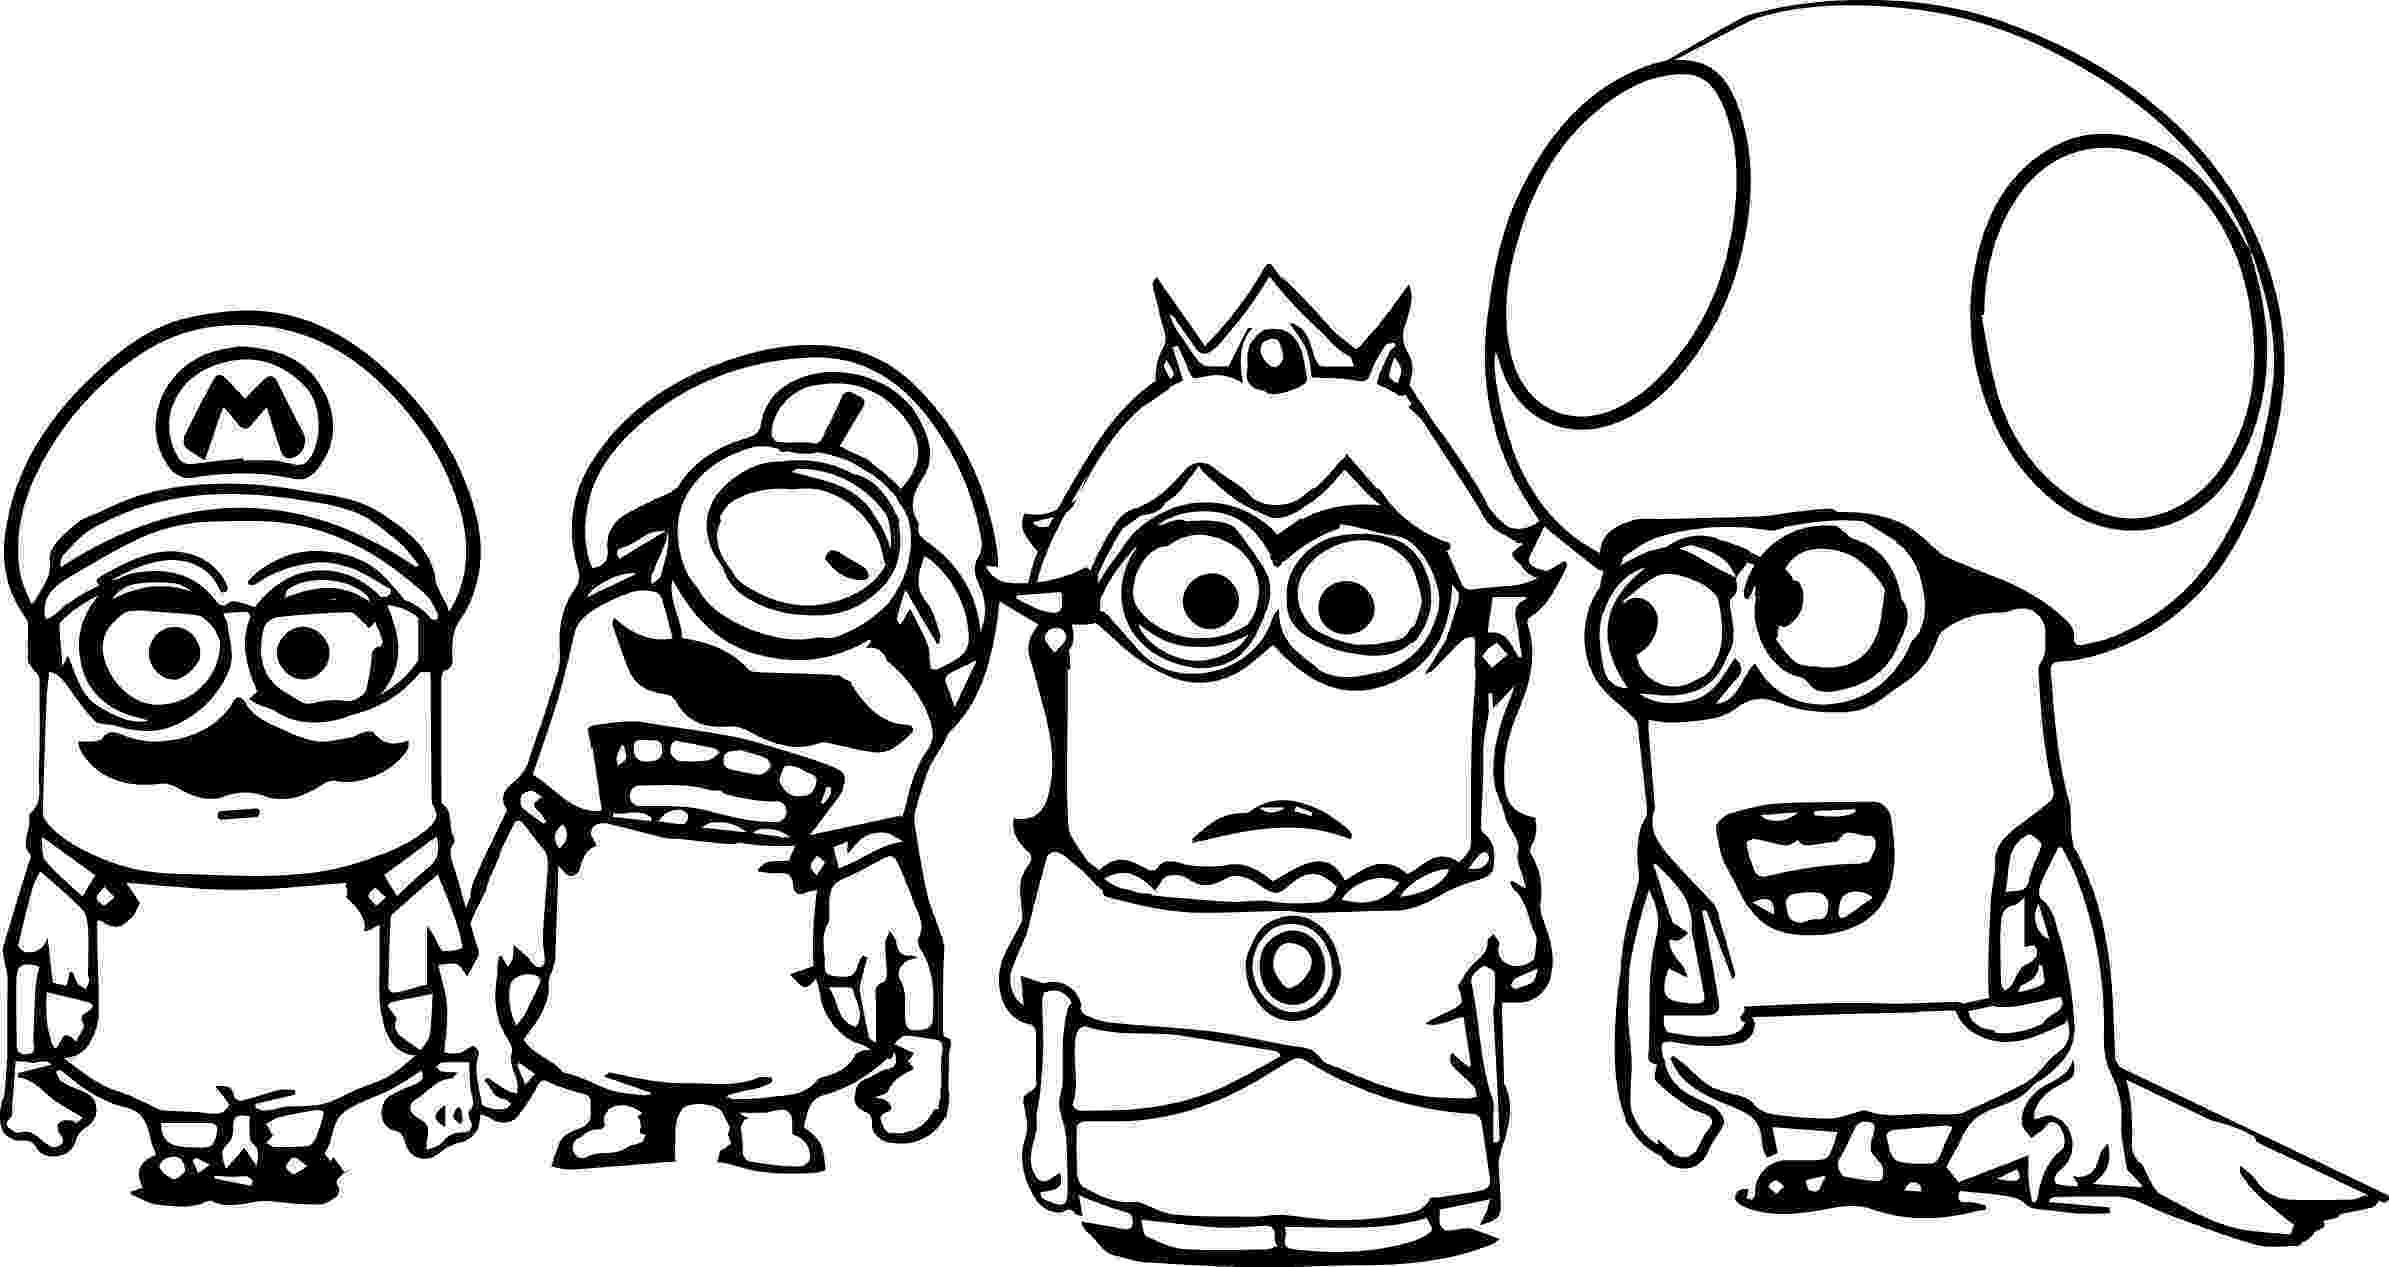 minion coloring minion coloring pages best coloring pages for kids coloring minion 1 1